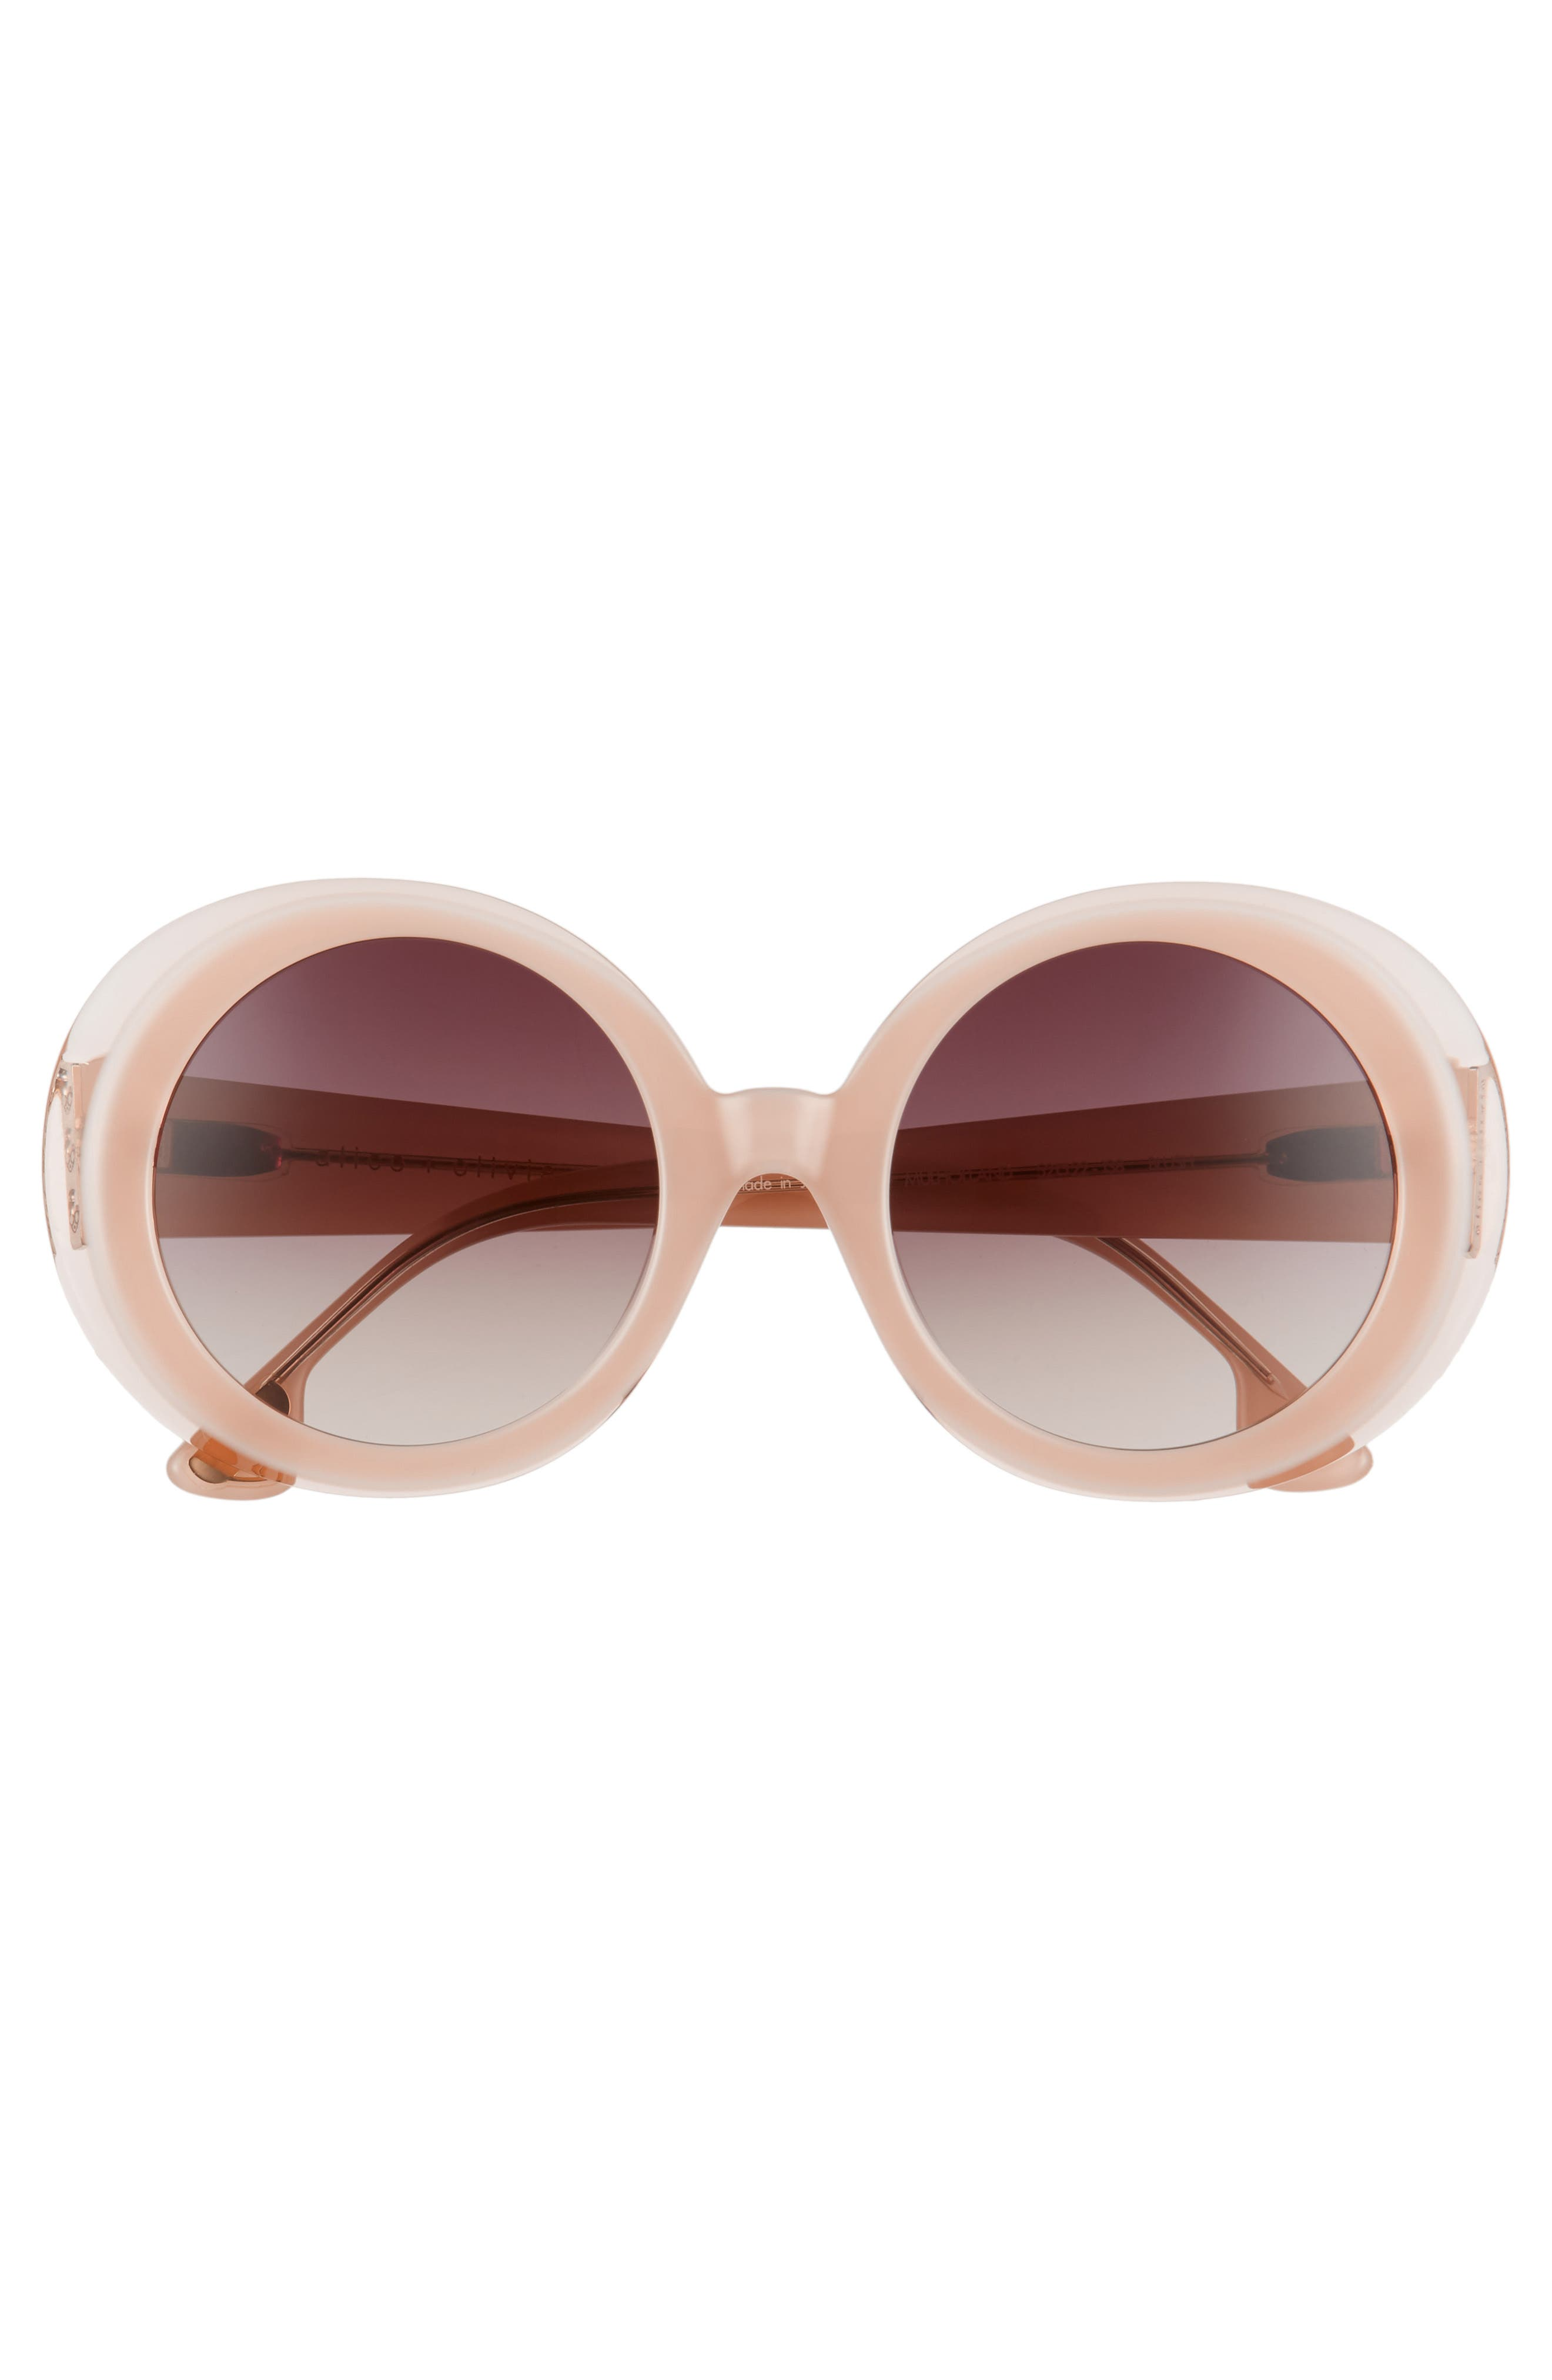 Mulholland 52mm Round Gradient Sunglasses,                             Alternate thumbnail 3, color,                             Blush